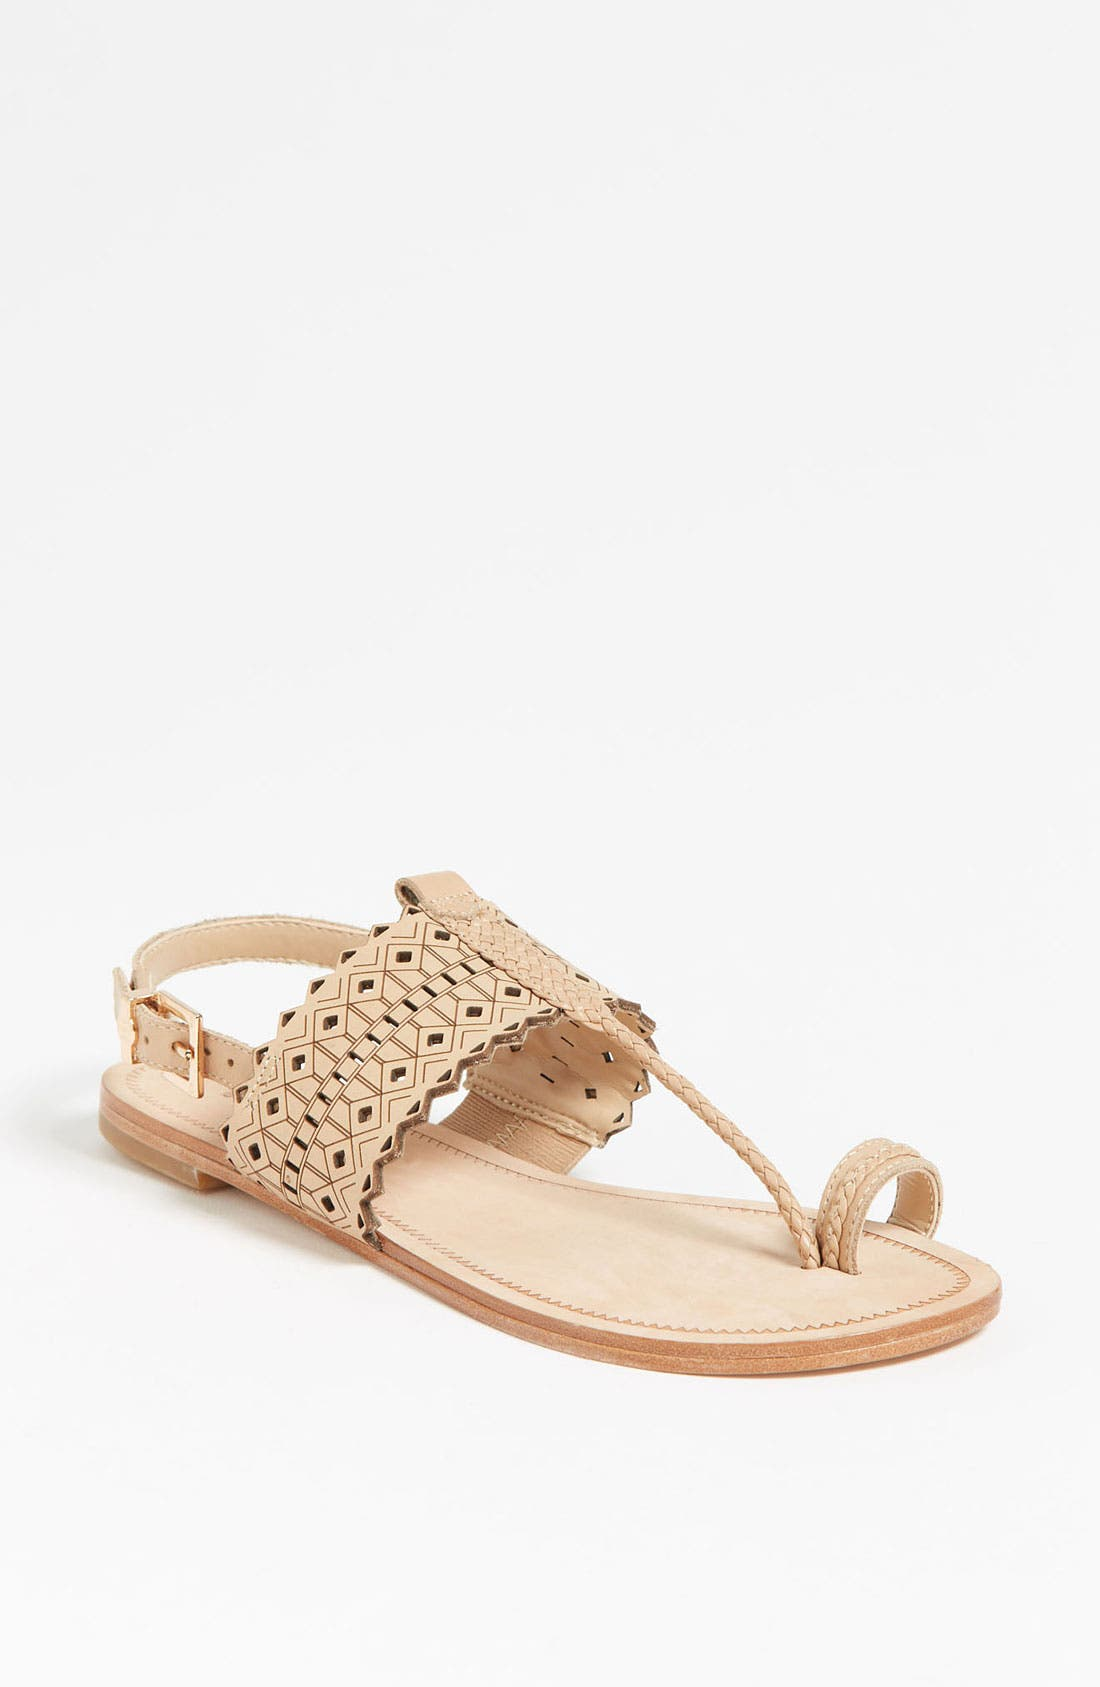 Alternate Image 1 Selected - BCBGMAXAZRIA 'Aerial' Sandal